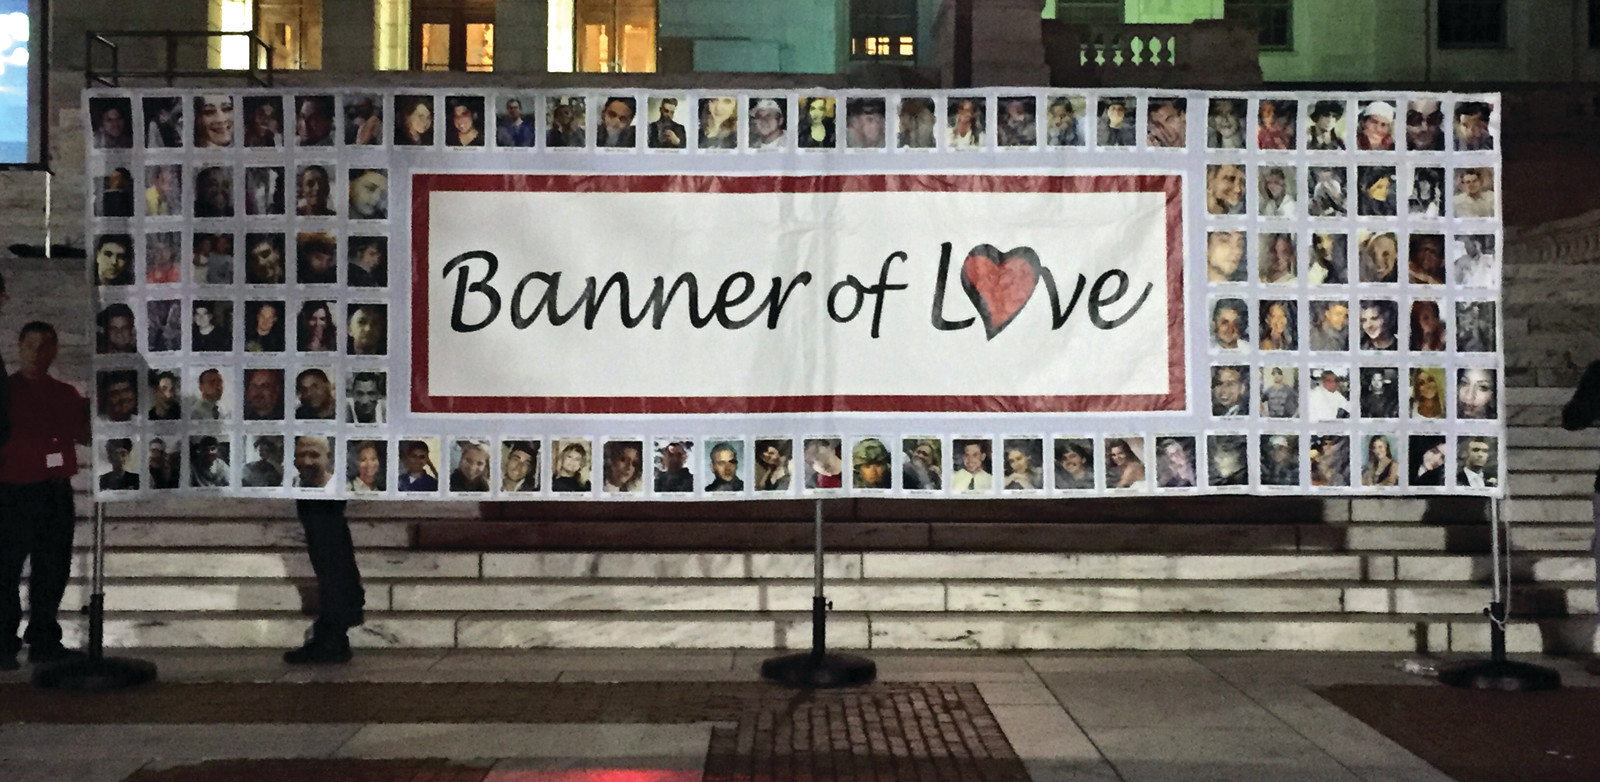 LOVE FROM AROUND THE STATE: The Banner of Love was raised on the steps of the State House last Thursday night, depicting those lost to overdose. (Sun Rise photos by Zack DeLuca)